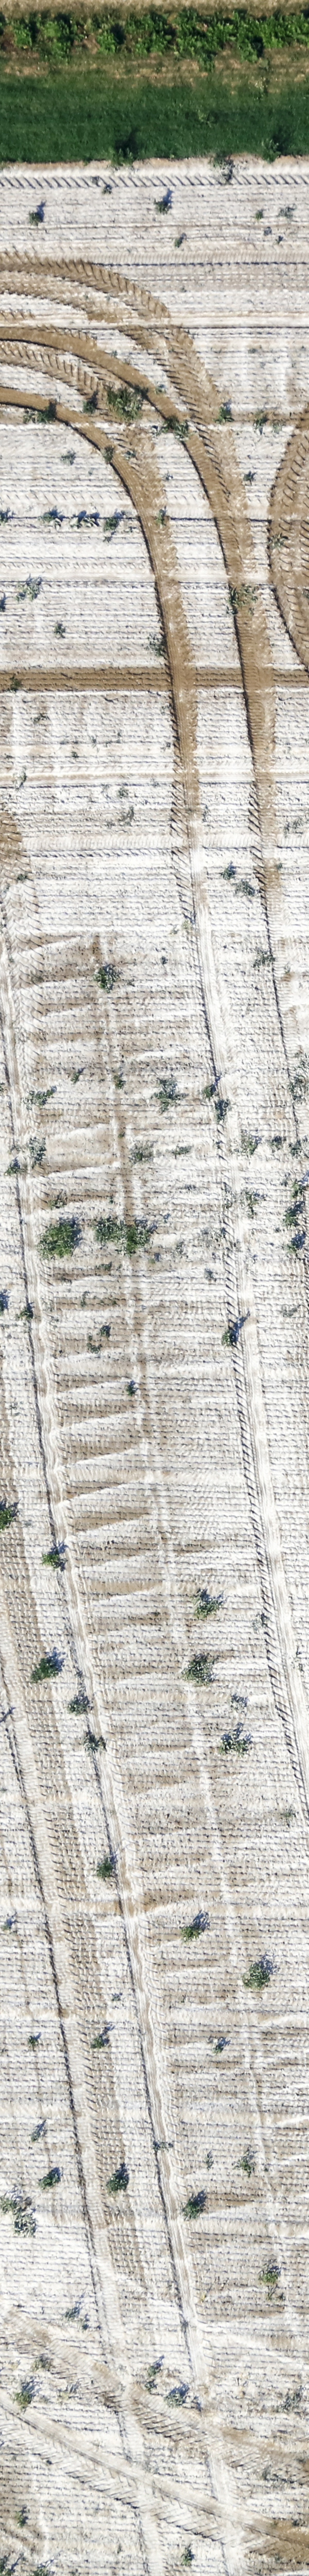 Aerial view of a tractor with sprayer shortly before completion of the lime spraying work - Klaus Leidorf Aerial Photography